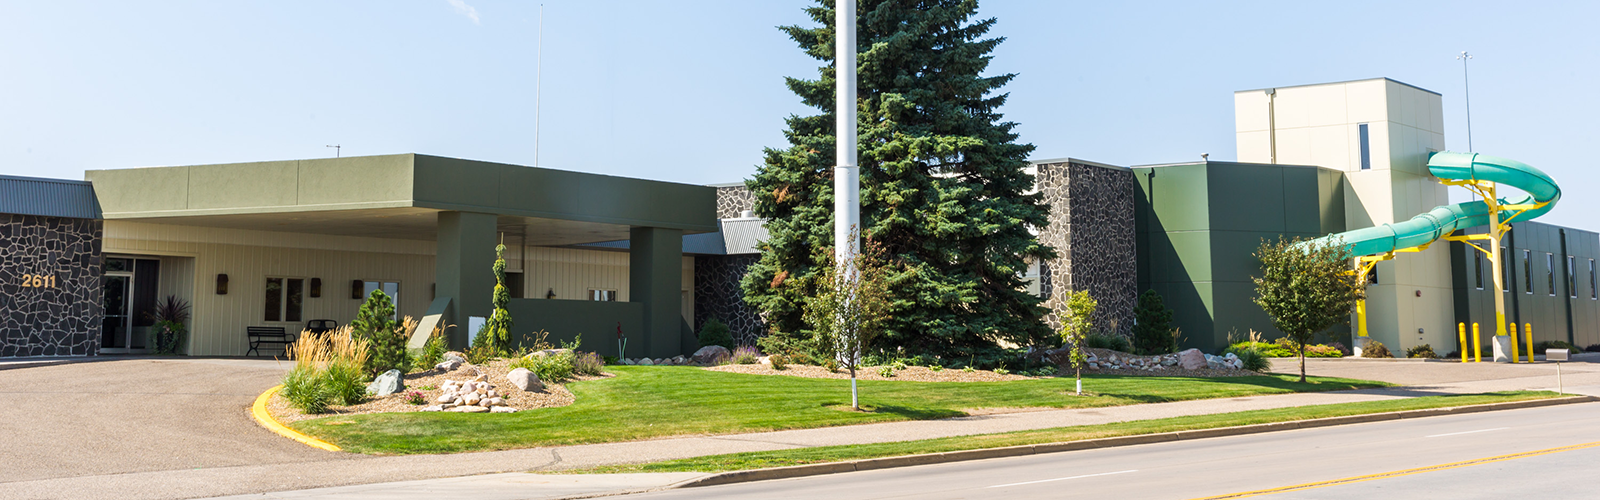 Baymont Inn and Suites Mandan - 4